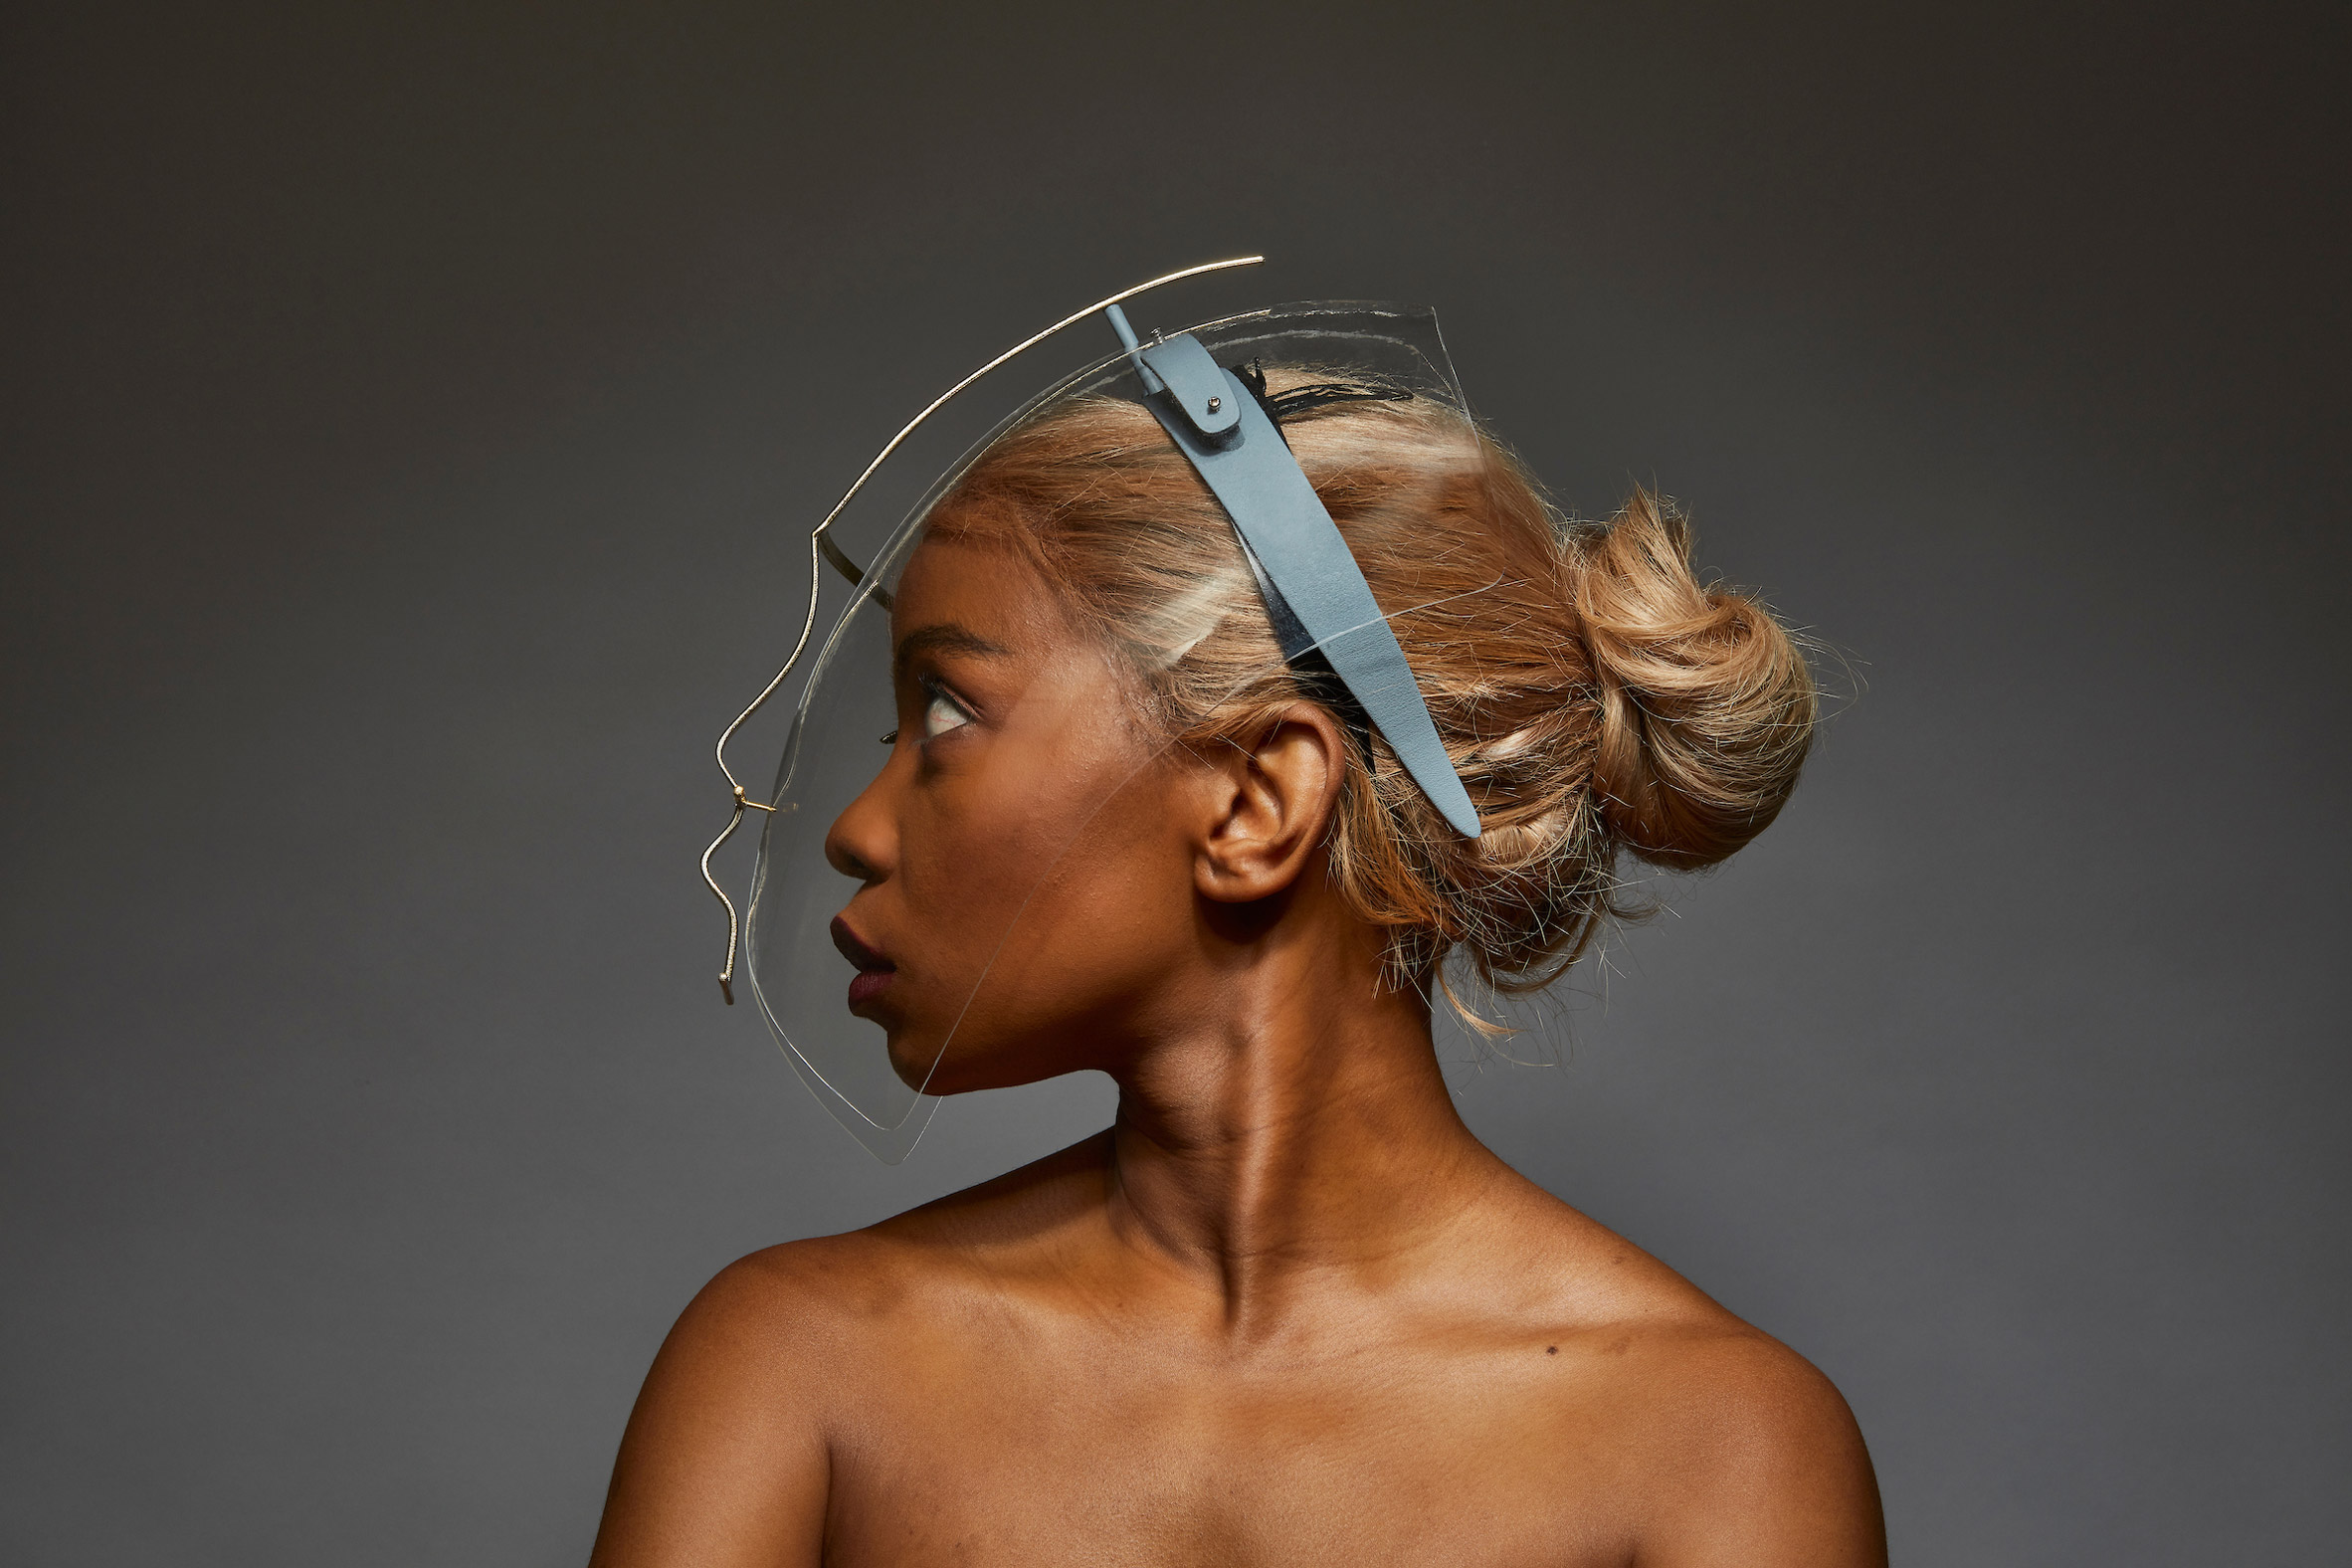 Transparent Egaro in Freedom to Move face shields by Tosin Oshinowo and Chrissa Amuah